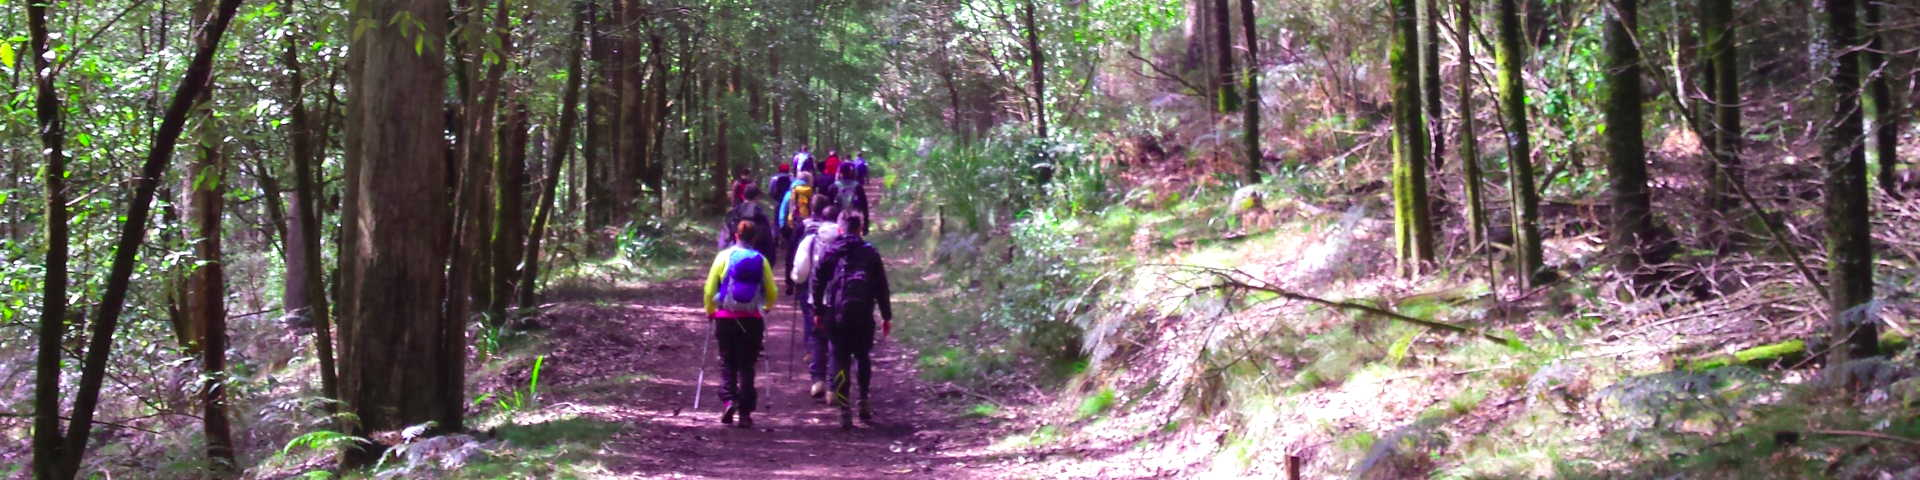 Forest Therapy walkers